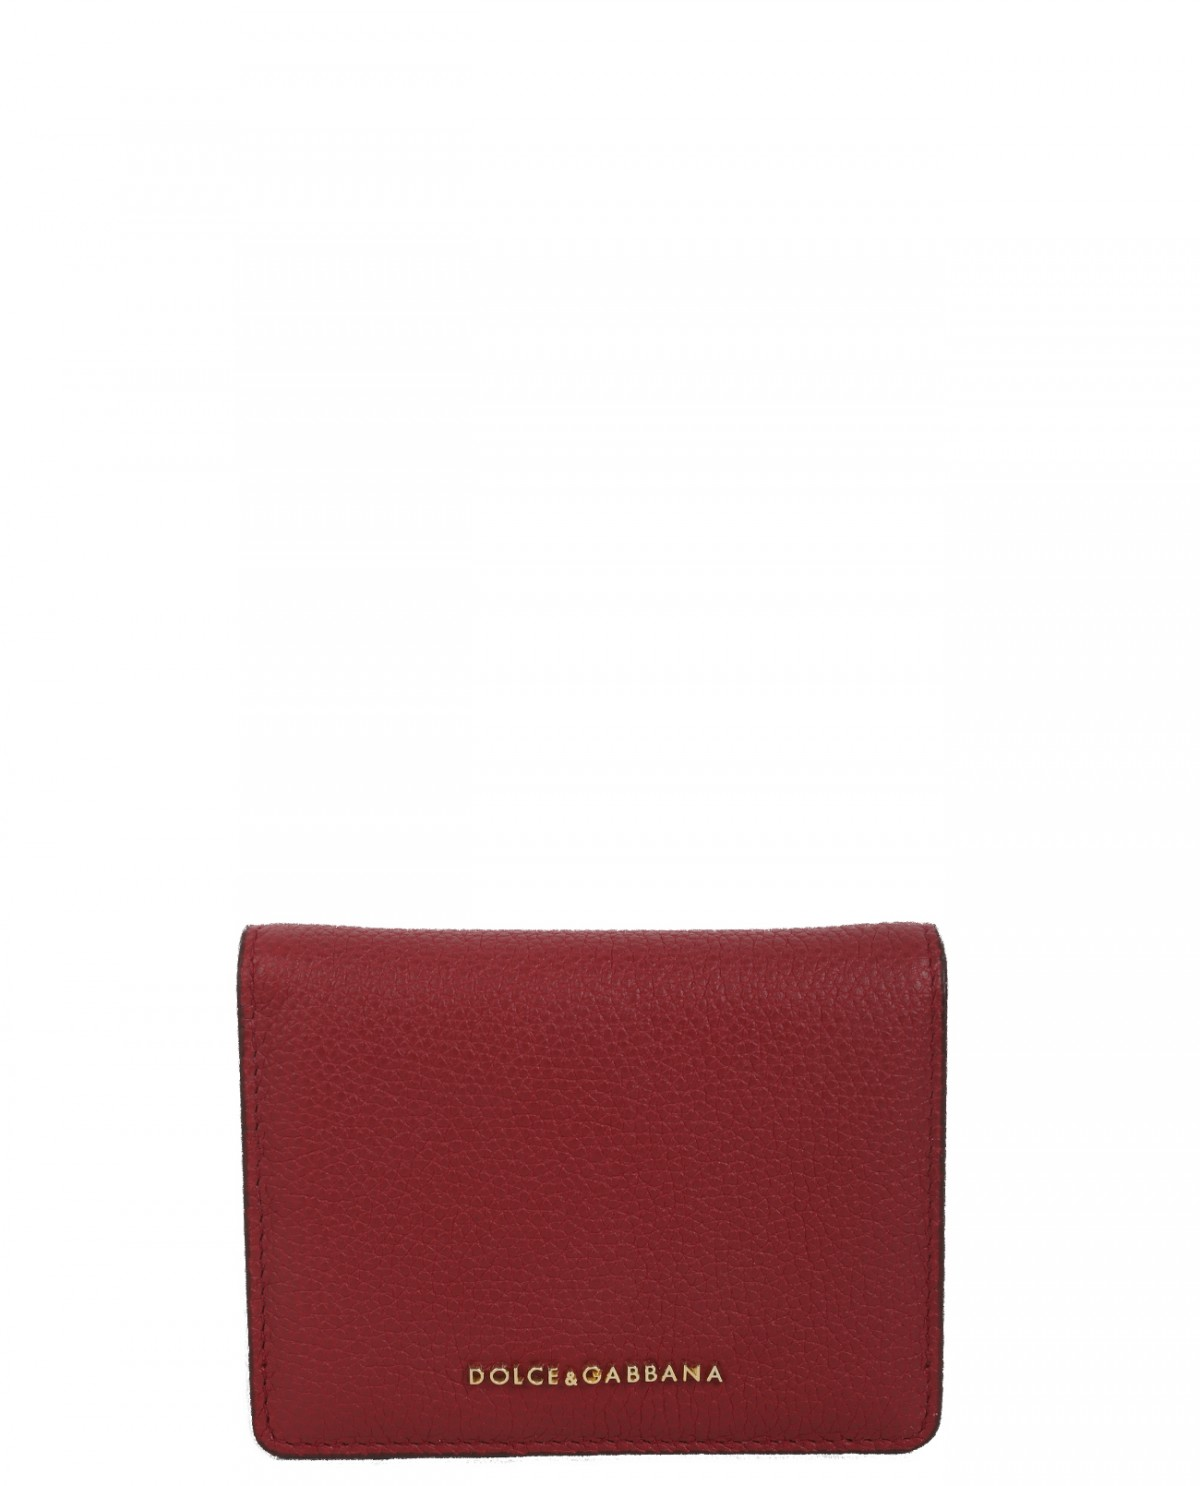 Dolce & Gabbana small red wallet